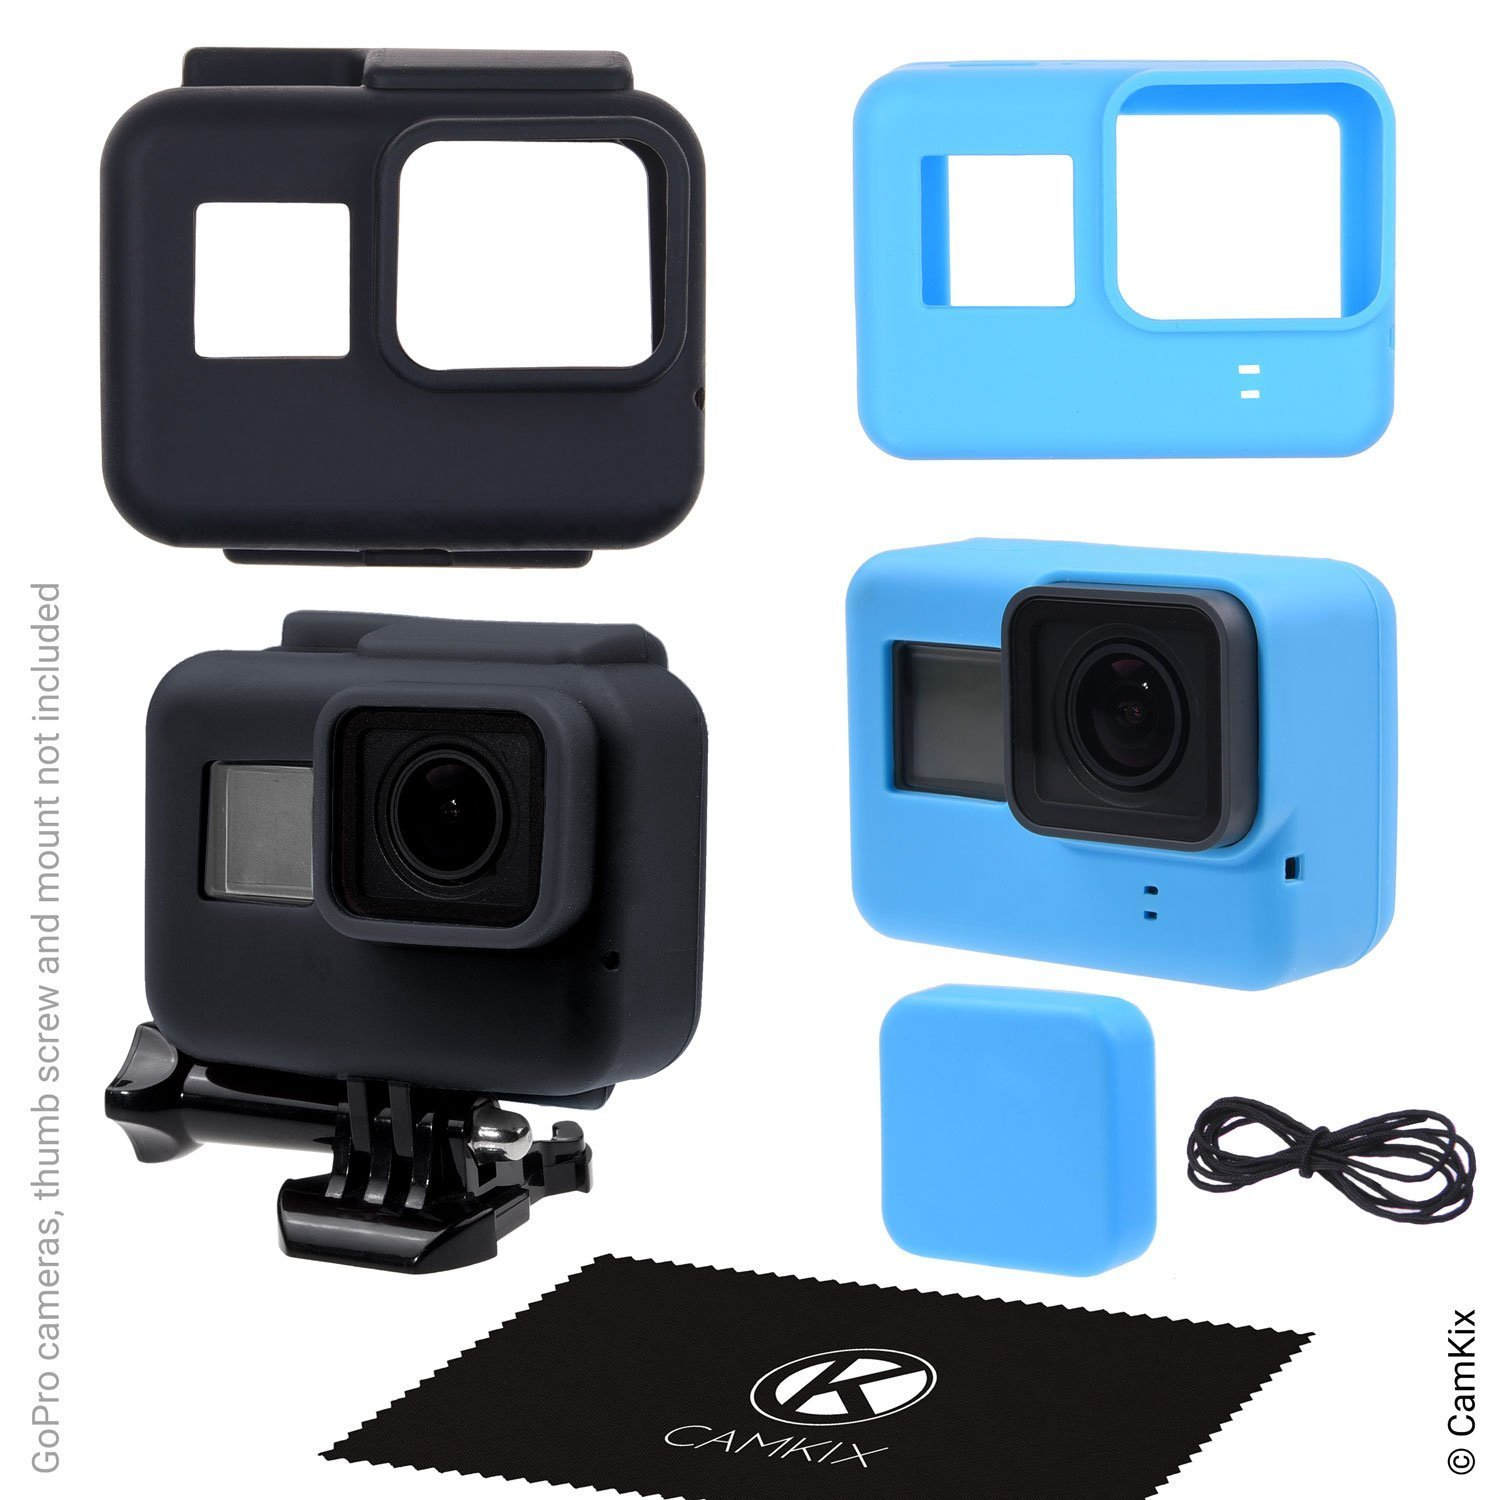 Silicone Sleeve Cases for Gopro Hero 5 Black - 2 Protective Covers - Black (Frame) / Blue (Camera) - Protection to Your GoPro Hero5 Camera and The Frame - Against Dust, Scratches and Light Shocks CamKix D0282-GP5-CBB